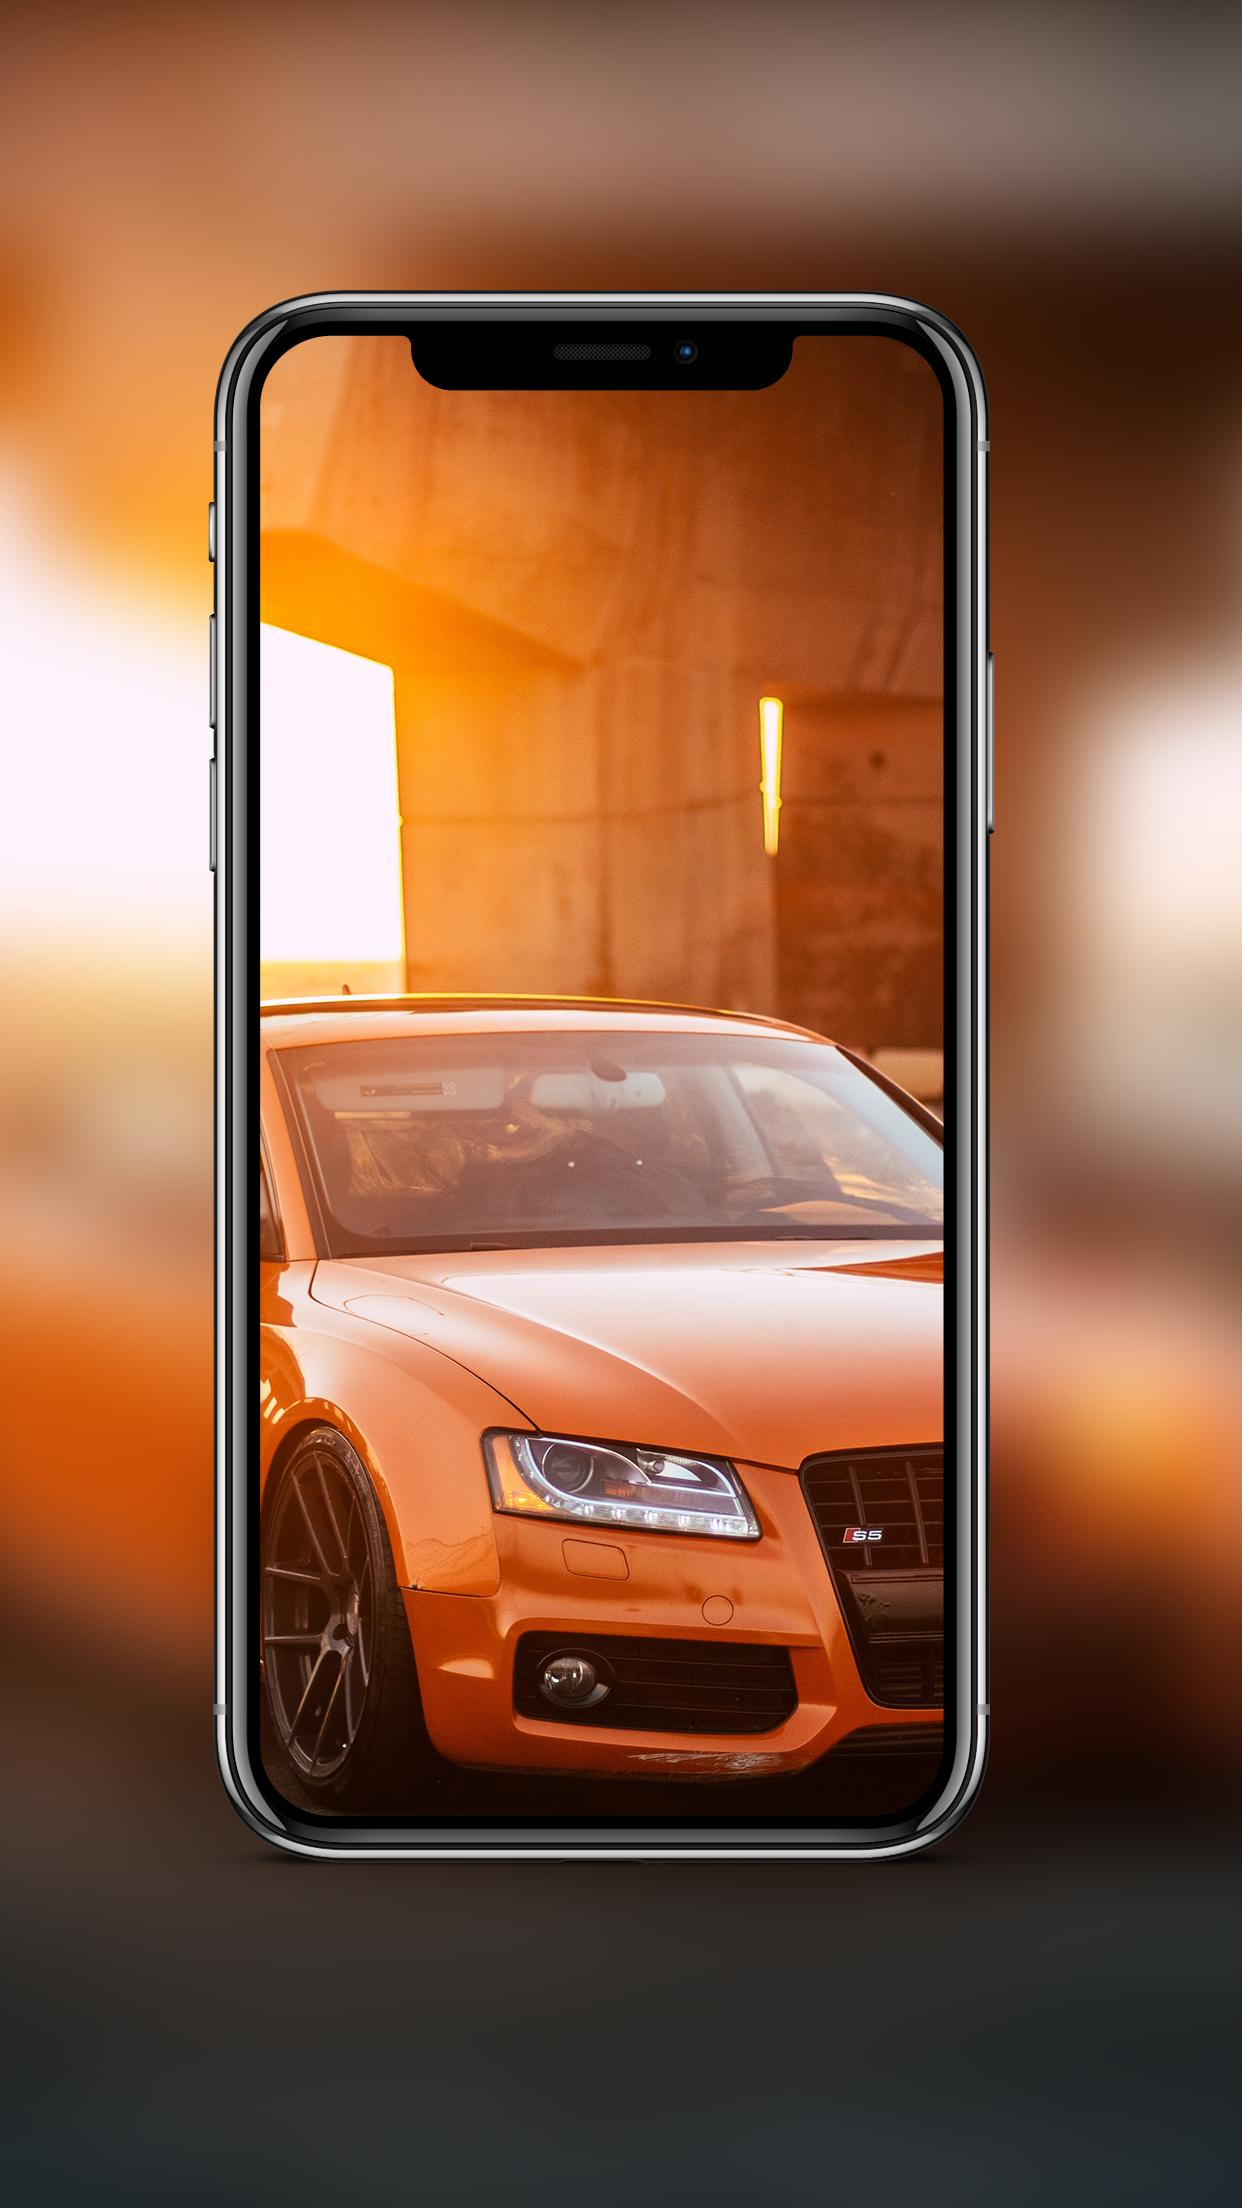 Sports Car Wallpapers Hd 4k Backgrounds For Android Apk Download